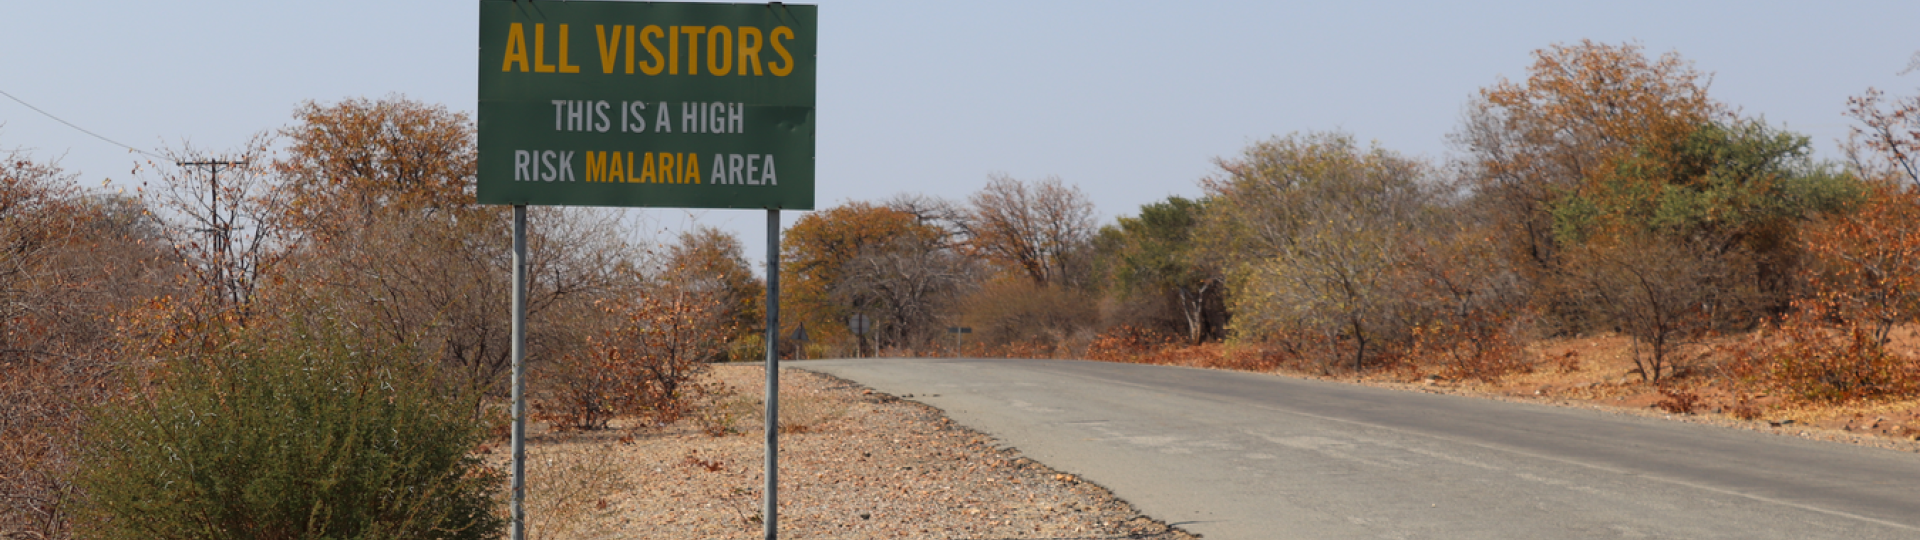 One of the few malaria awareness signs in the Vhembe district, in South Africa.